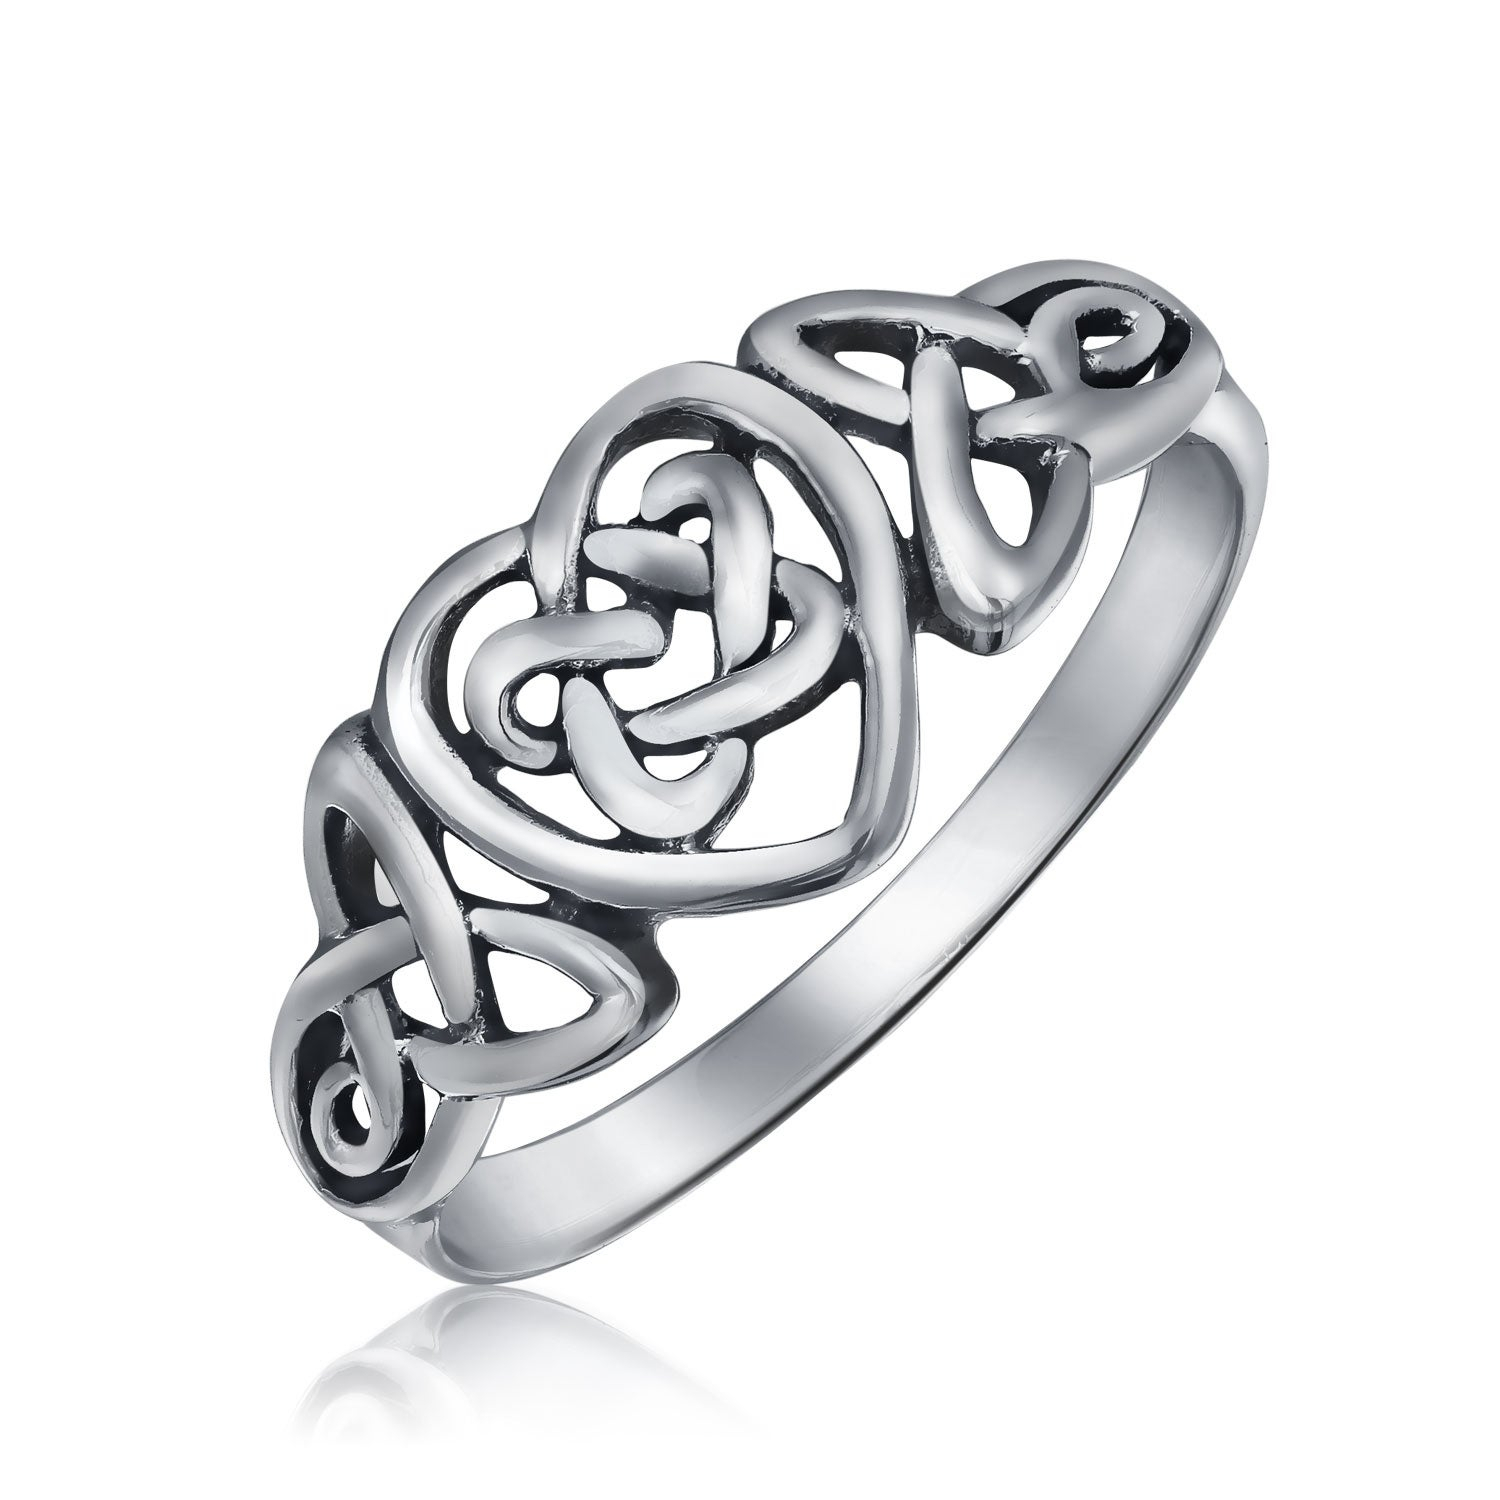 Irish Celtic Love Knots Infinity Heart Forever Endless Promise Ring 925  Sterling Silver Polished Finish Band With Regard To Latest Knotted Hearts Rings (View 8 of 25)